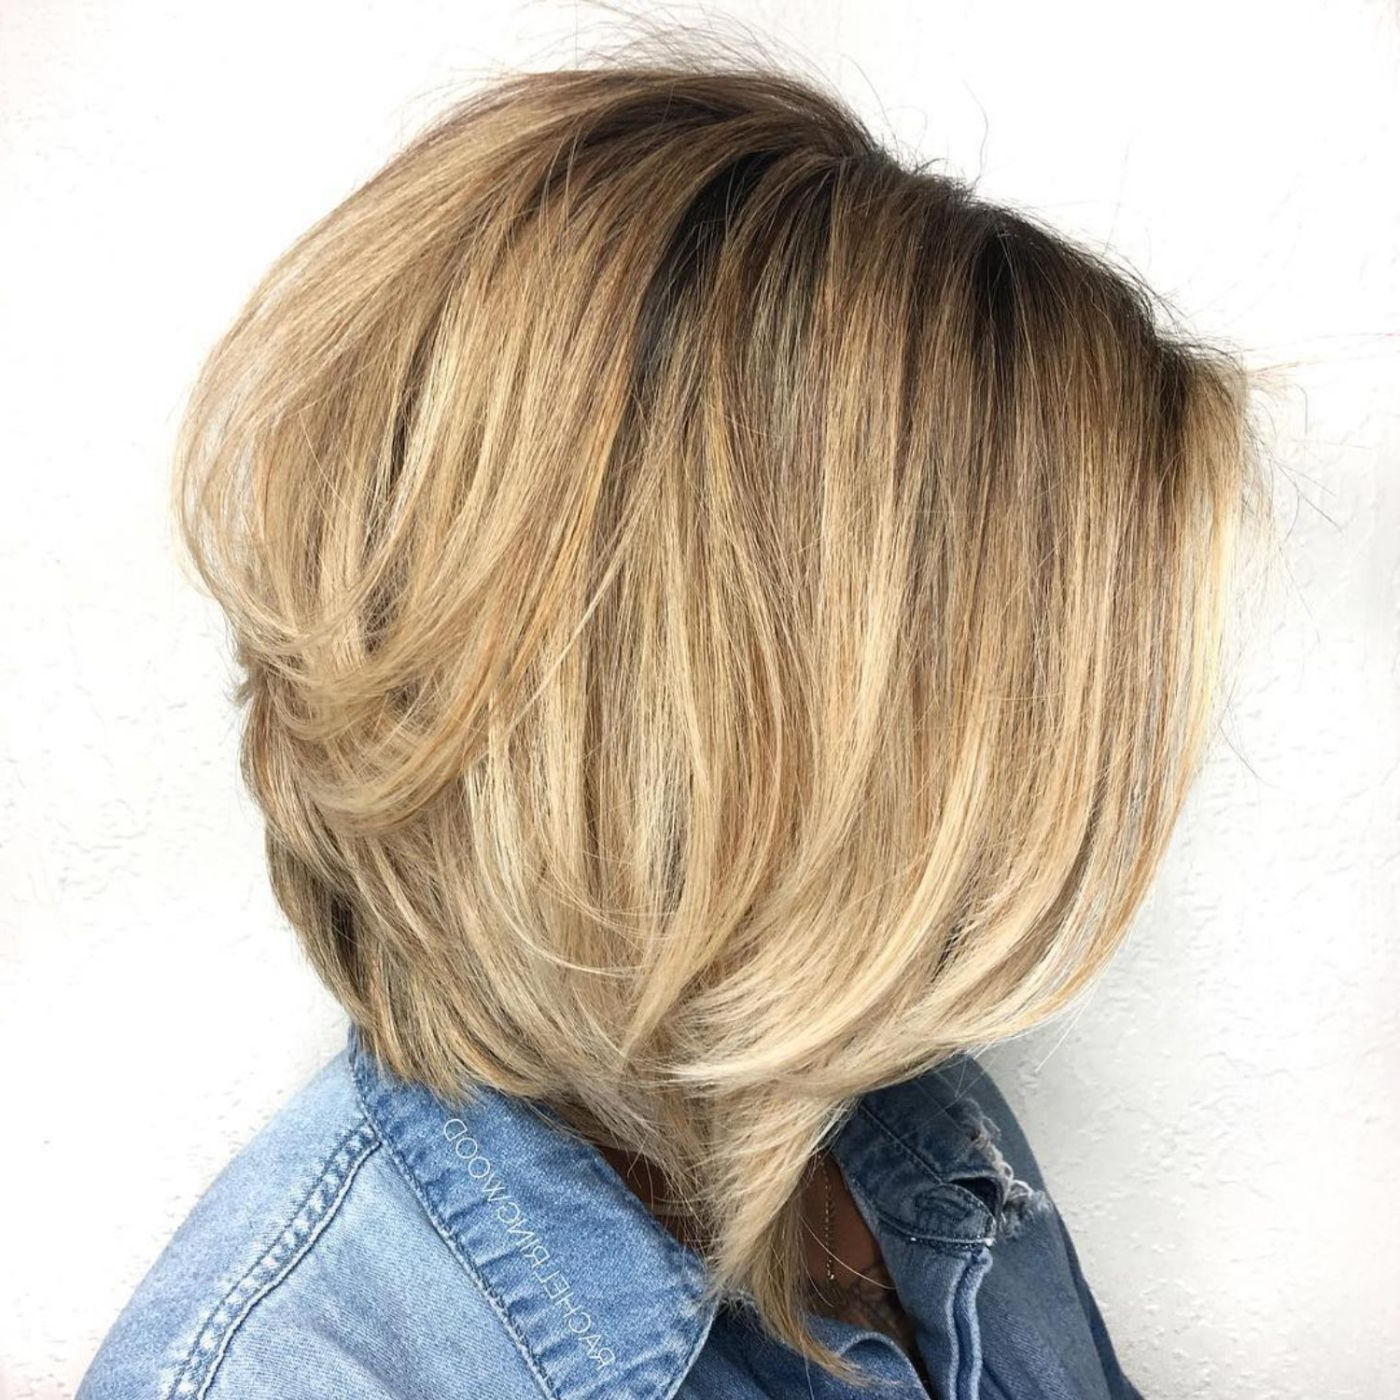 Hair Cut Pertaining To Well Known Uneven Layered Bob Hairstyles For Thick Hair (View 2 of 20)